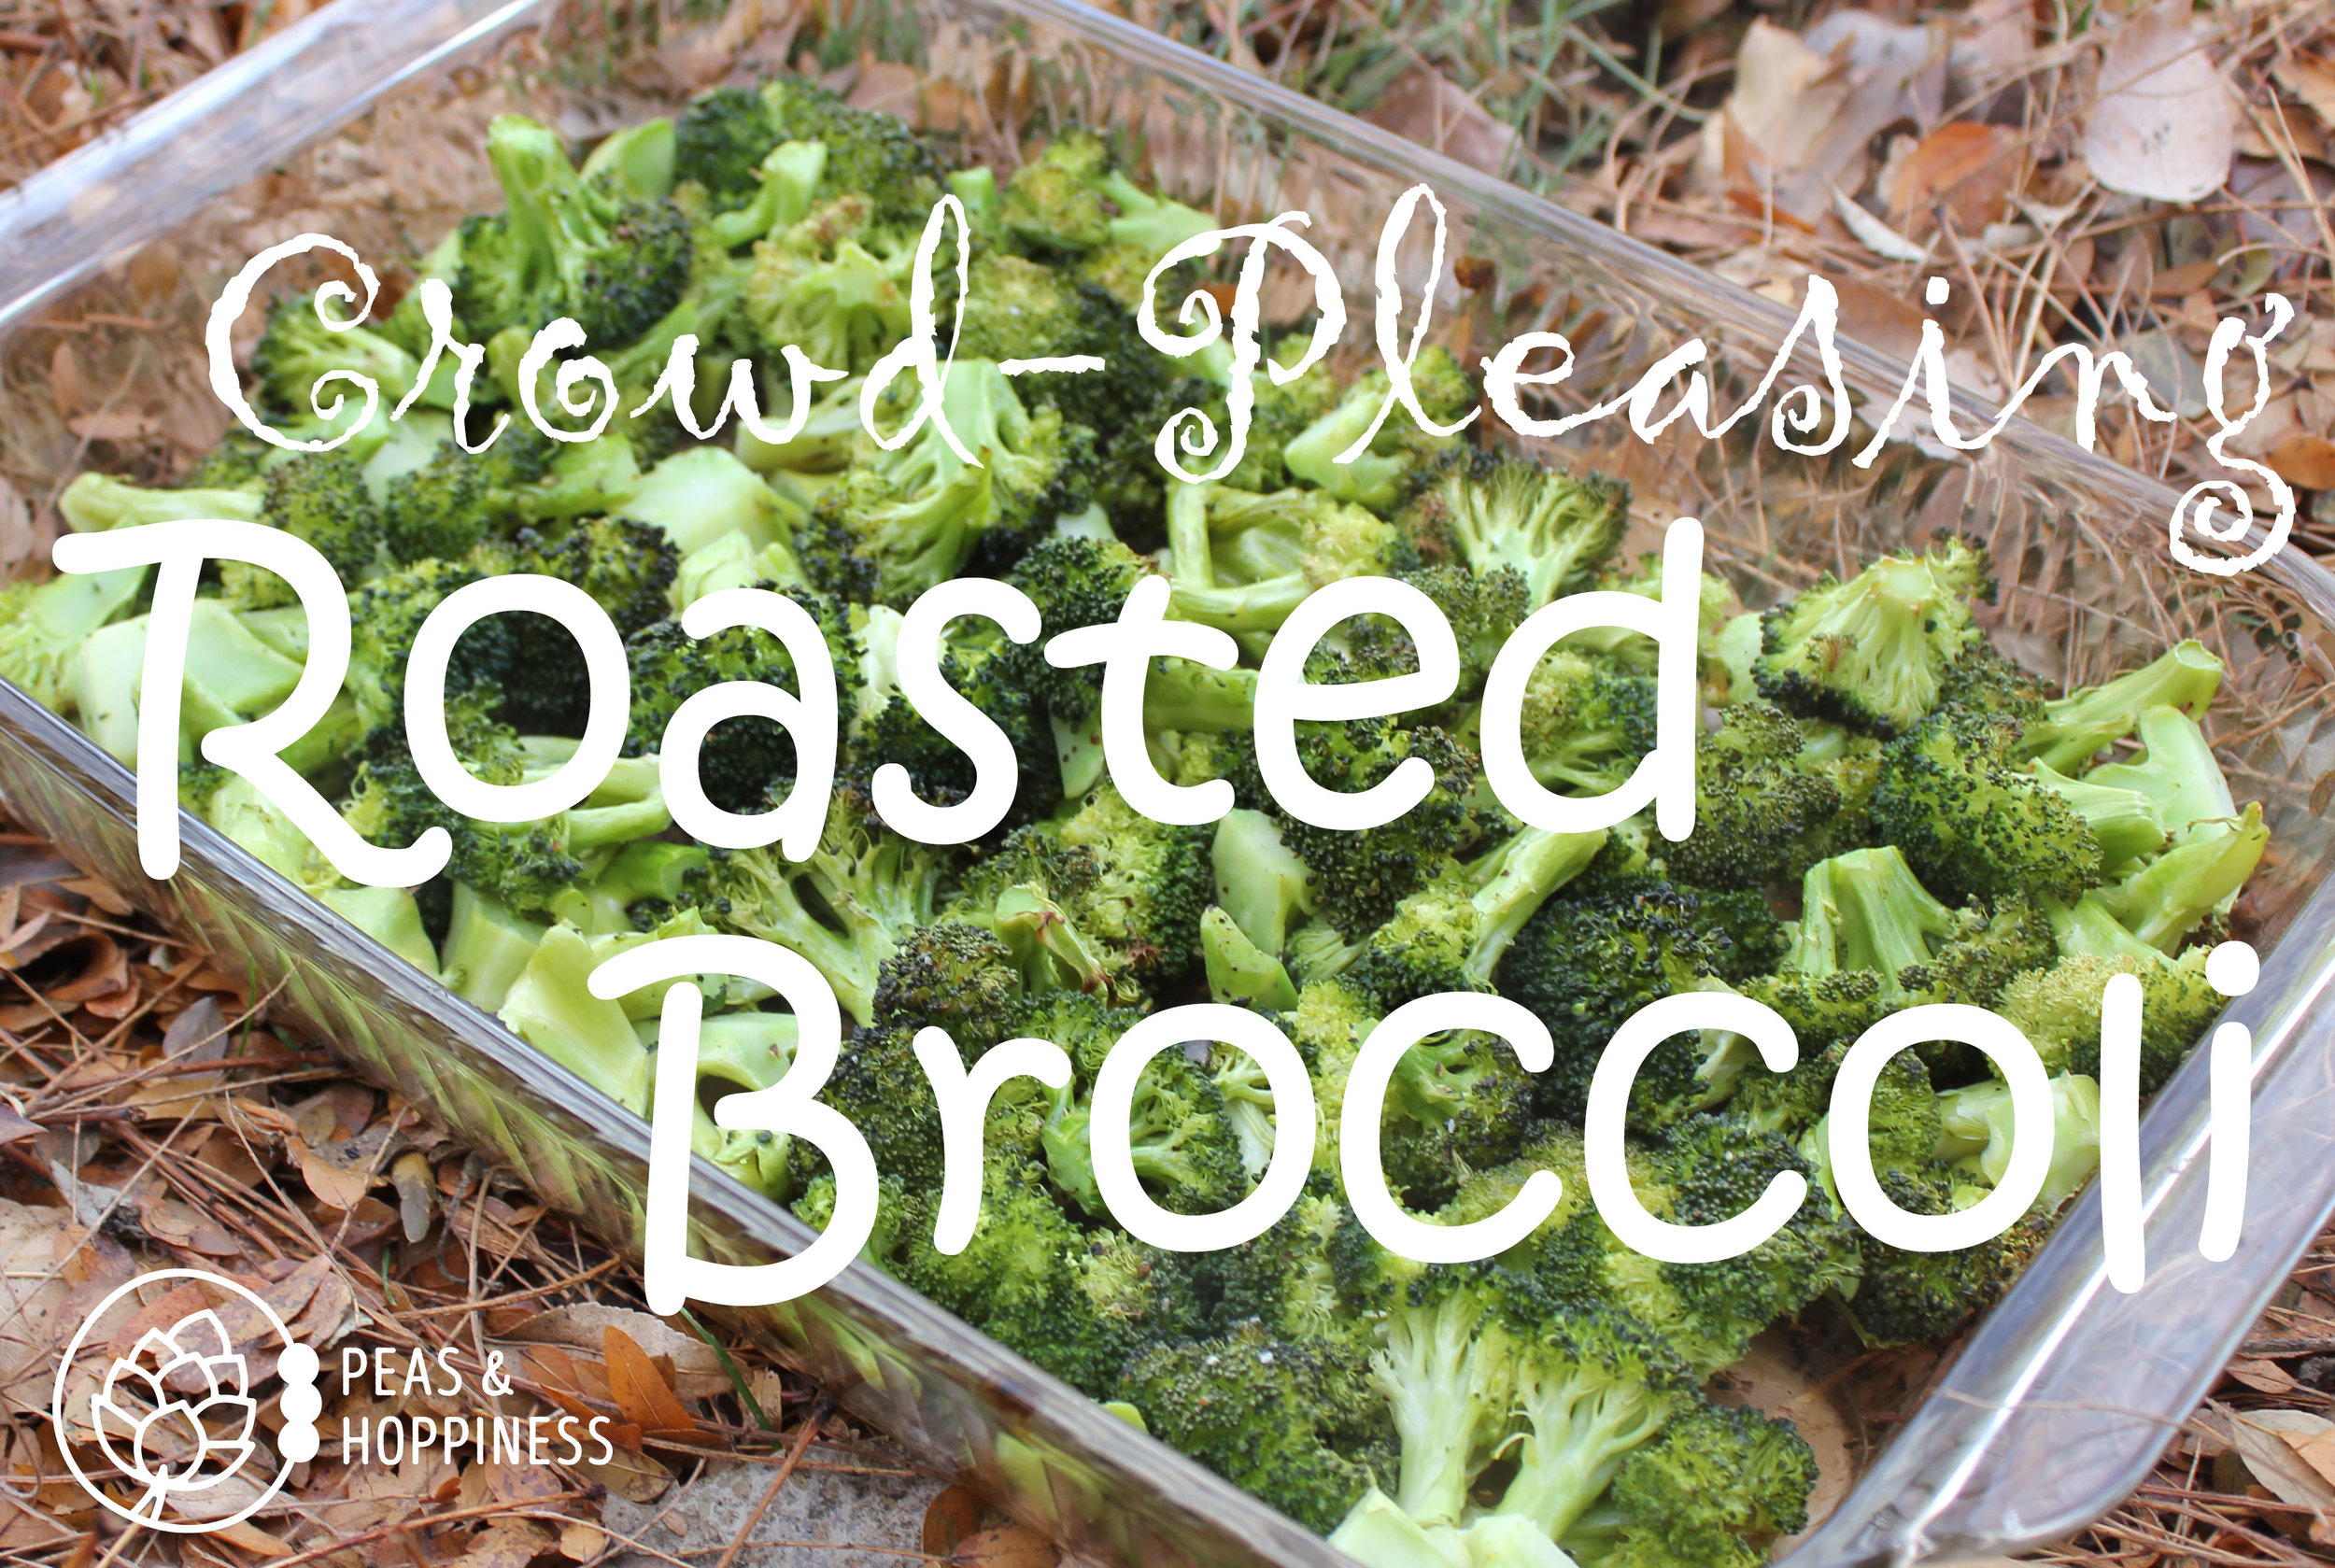 Crowd-Pleasing Roasted Broccoli from Peas and Hoppiness - www.peasandhoppiness.com